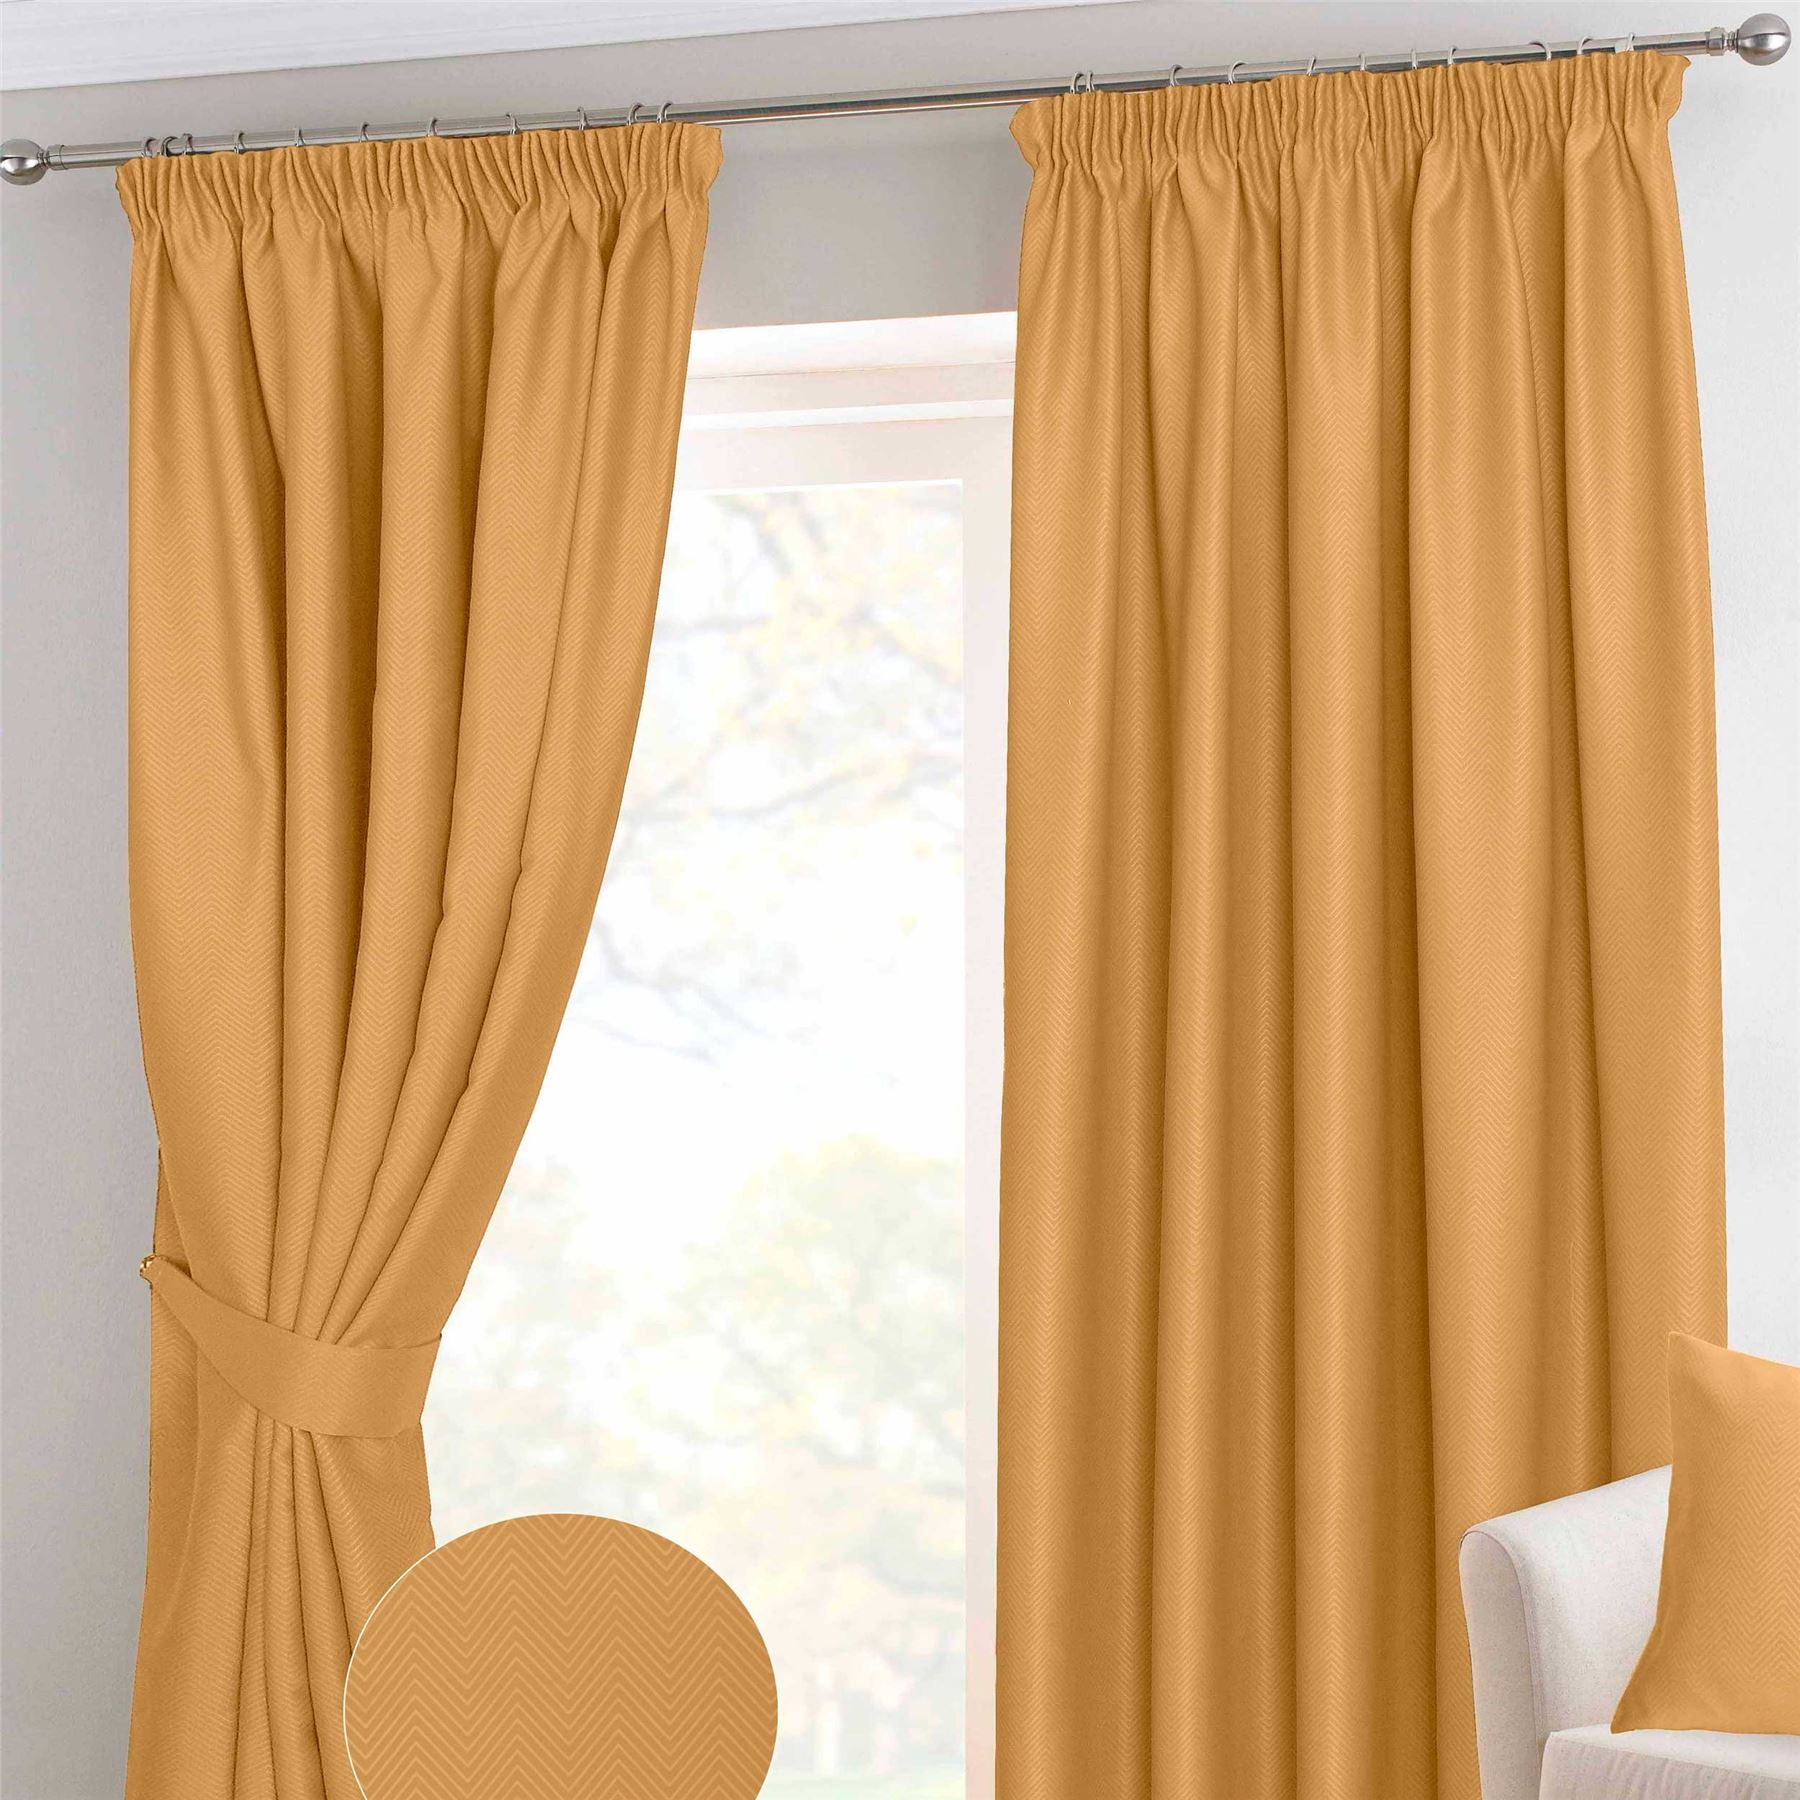 Blackout pleated curtains